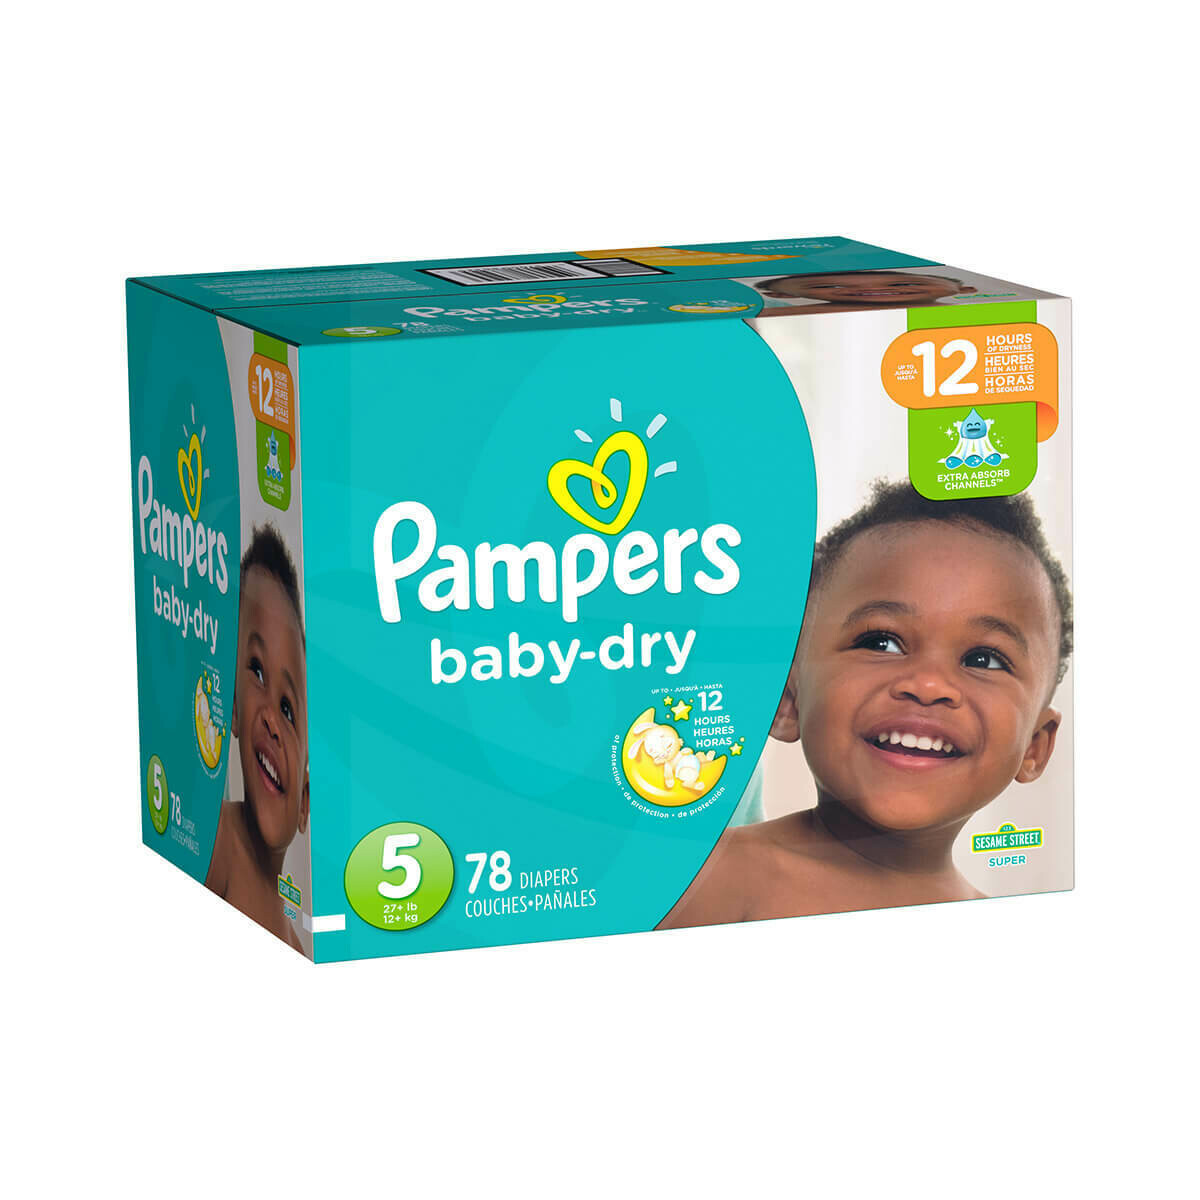 Pampers talla 5 (78 unidades)